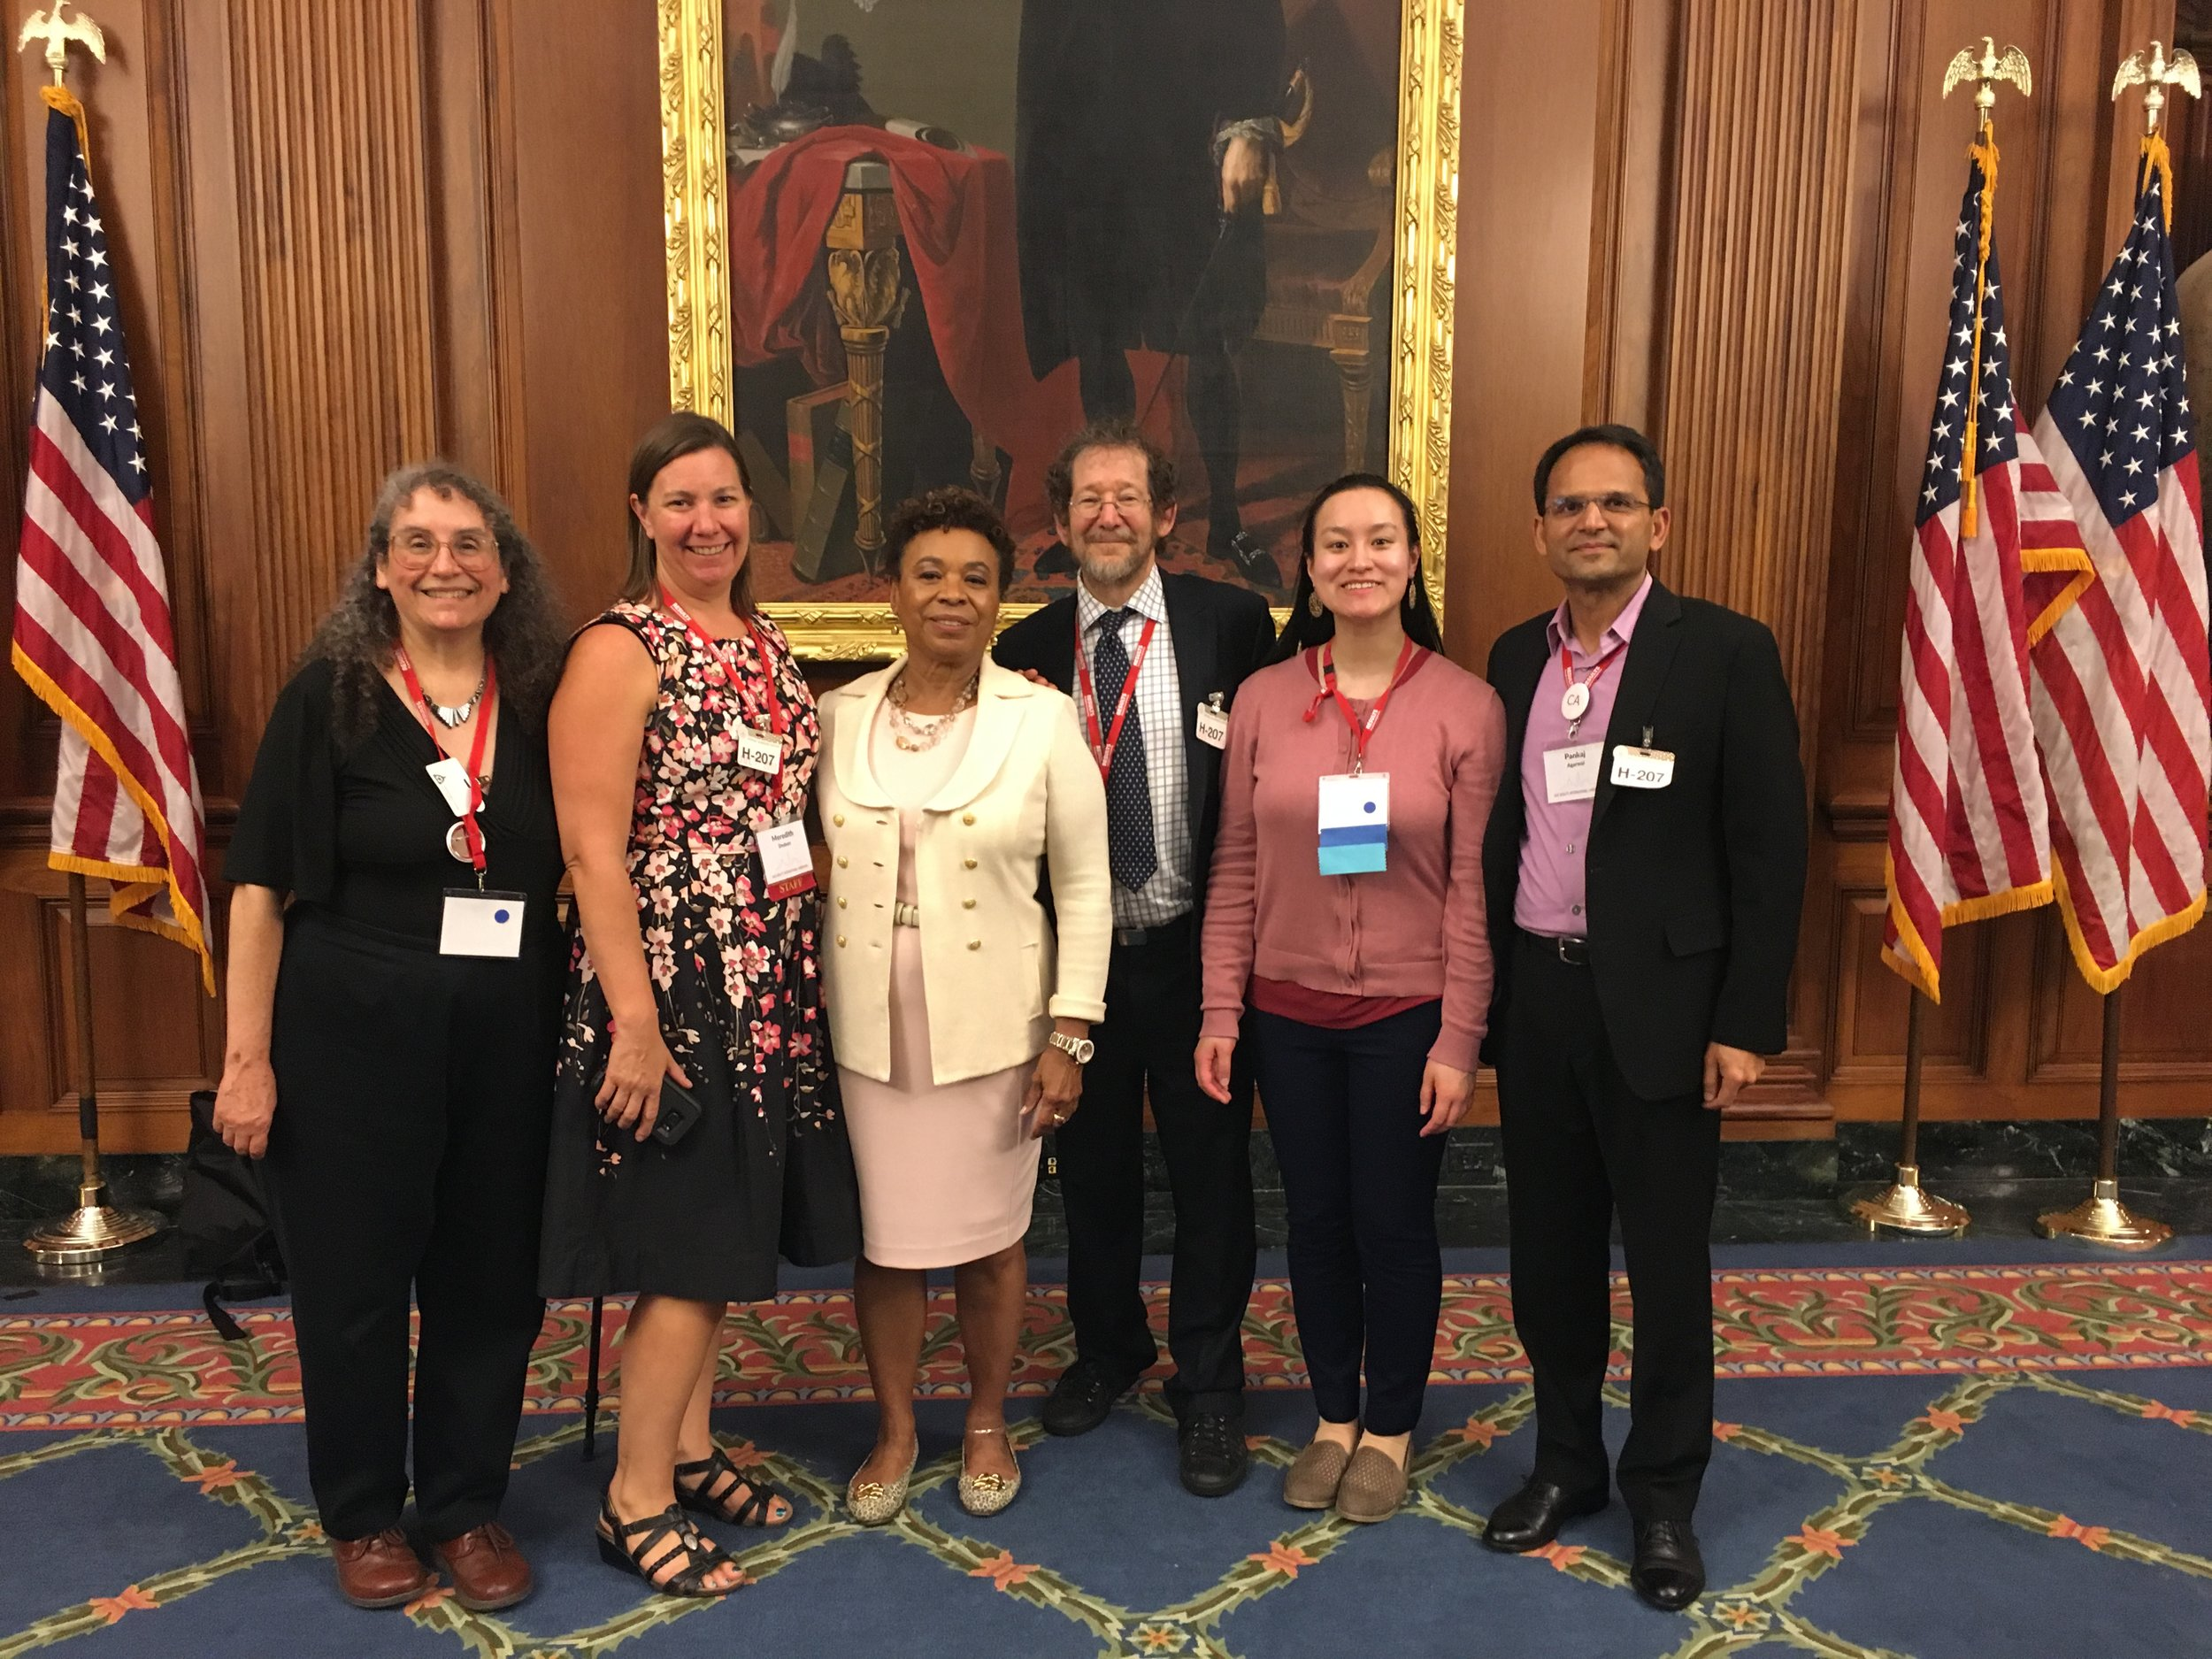 RESULTS California Volunteers meet with Congresswoman Barbara Lee at RESULTS International Conference 2018 (In Washington, D.C.).jpeg